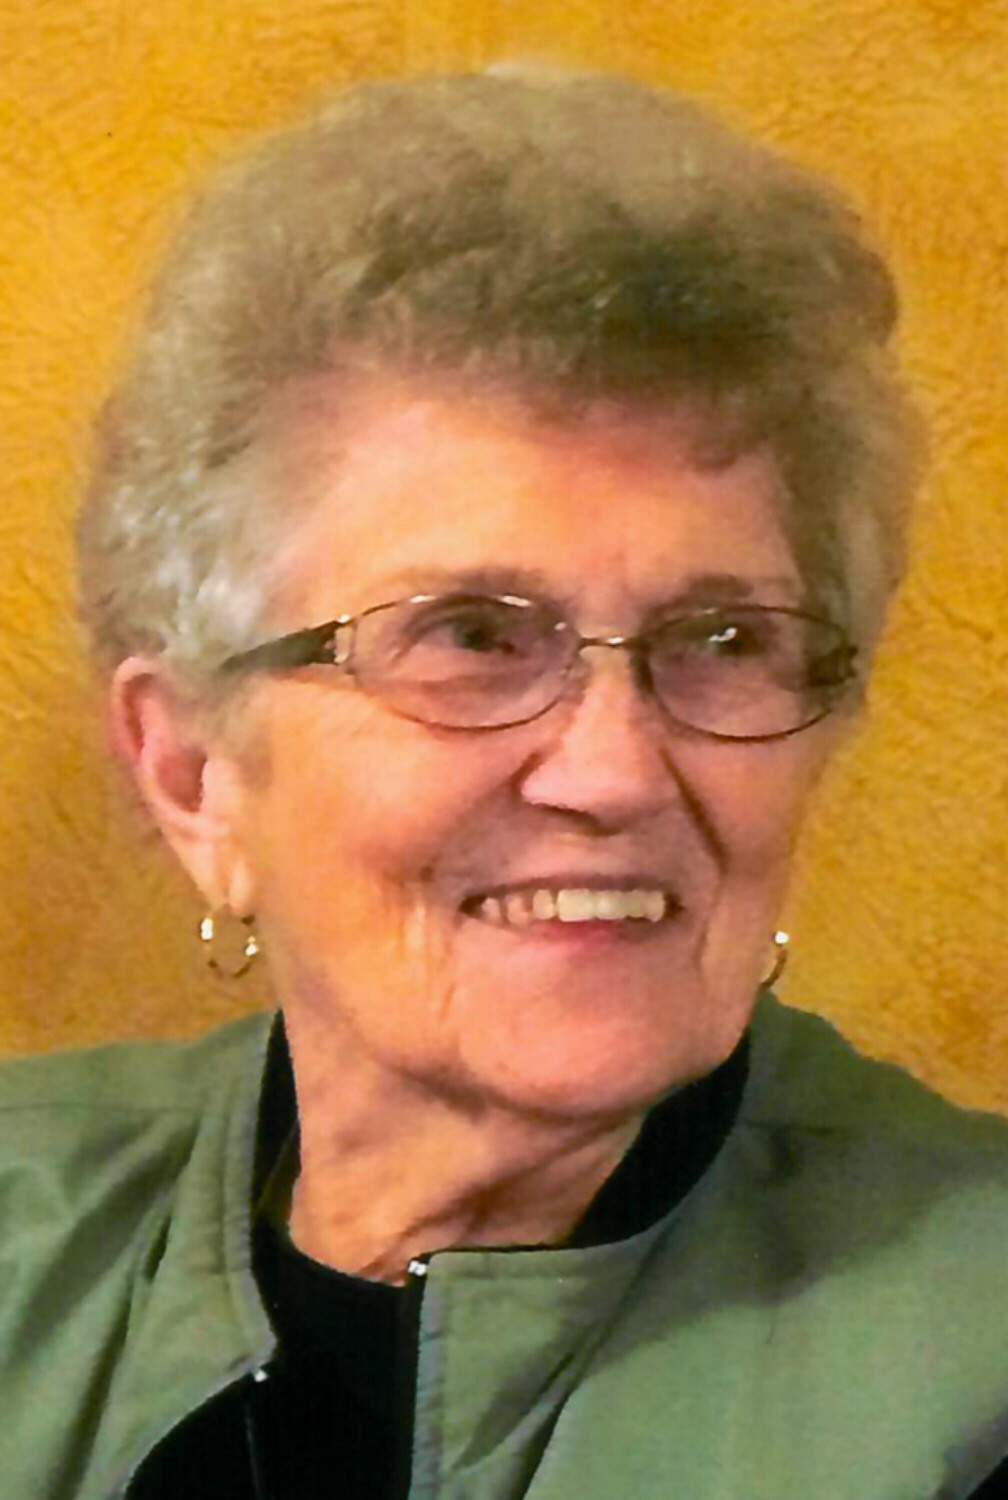 LaVina Kellerman, of Pinckneyville